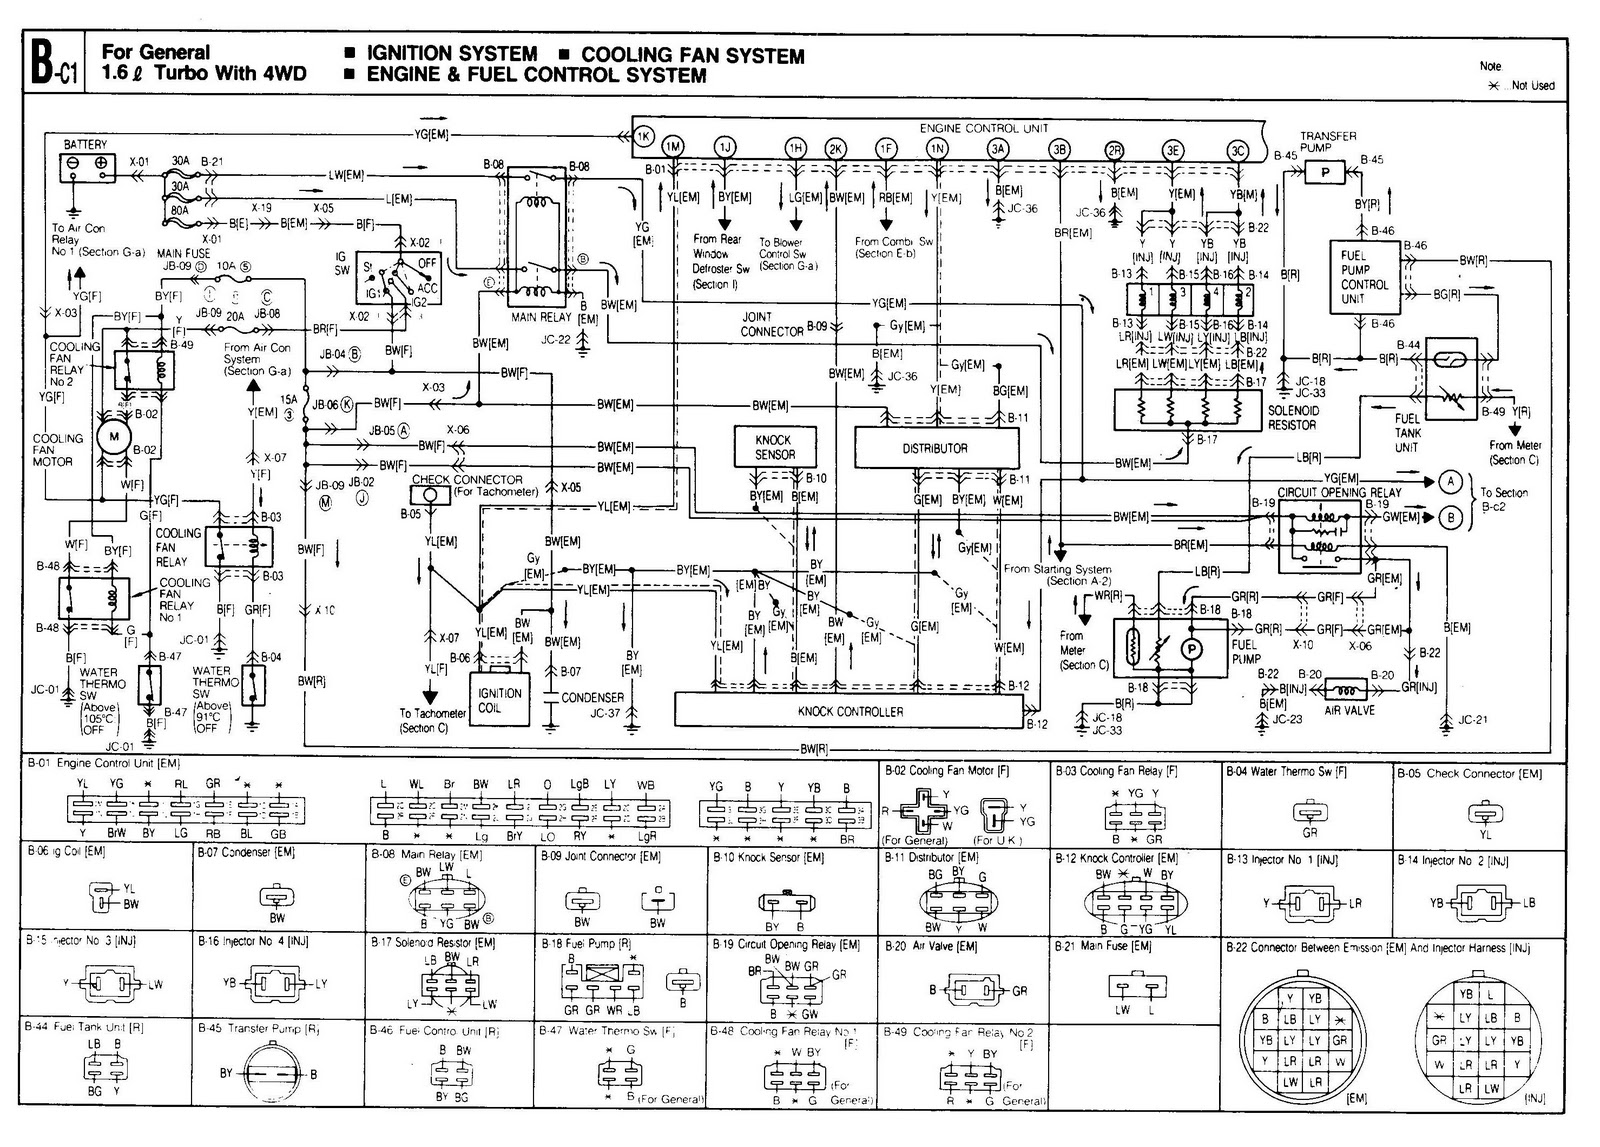 wiring diagram mazda b6t engine system l520 wiring diagram,wiring download free printable wiring diagrams,Honda Jazz Engine Wiring Diagram